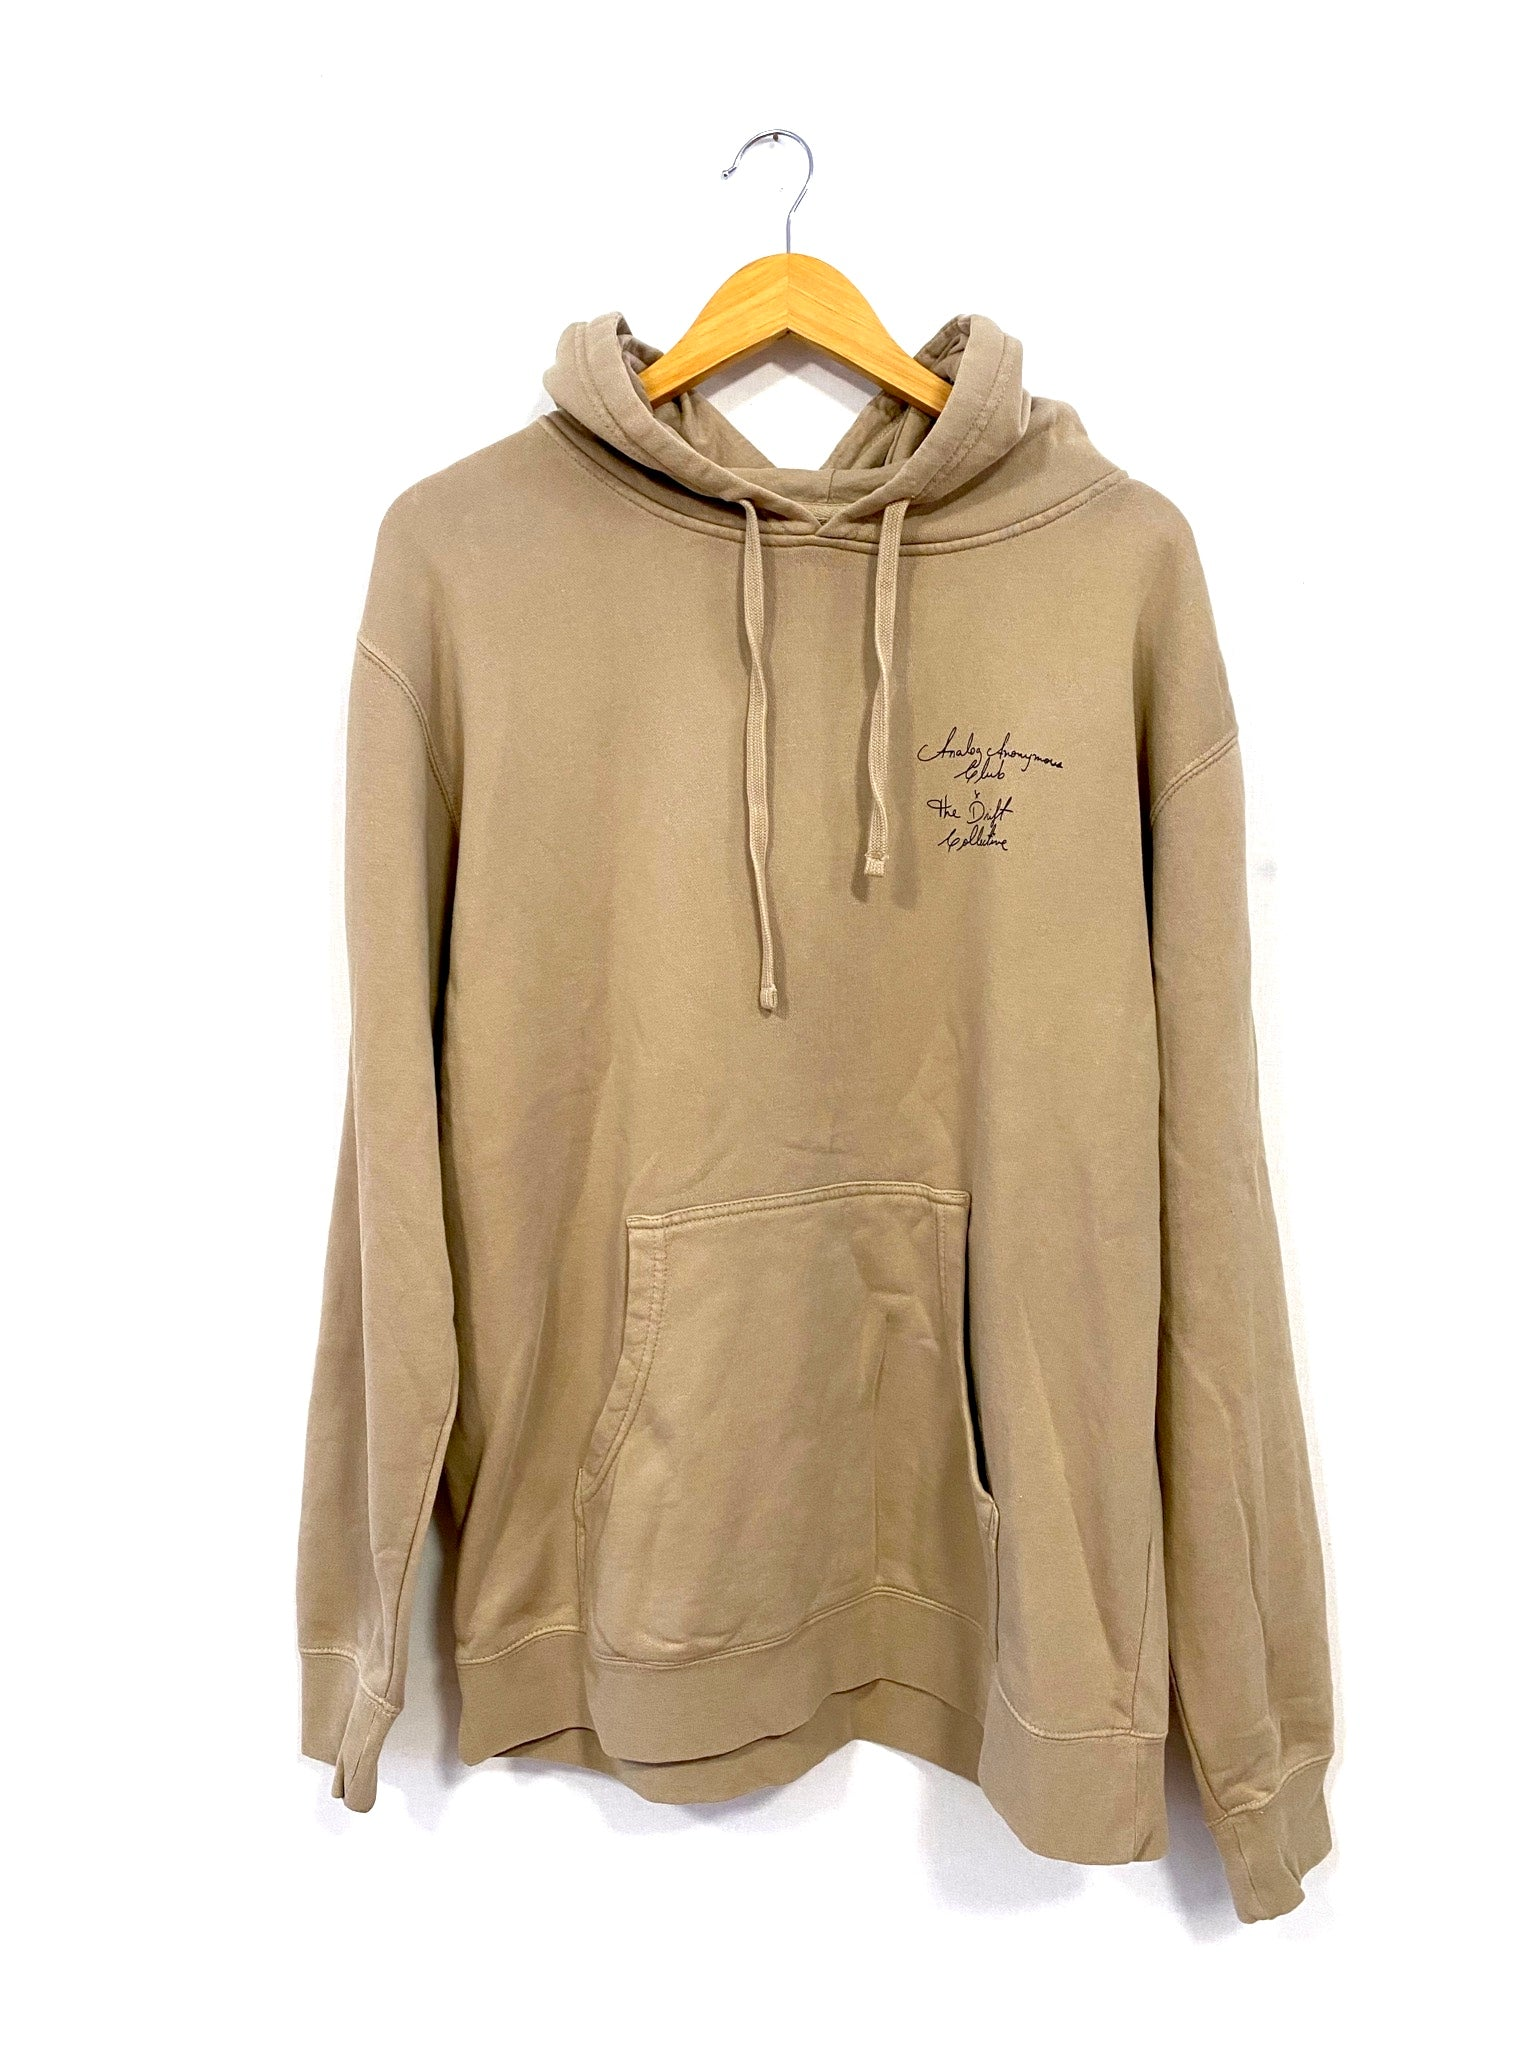 ANALOG ANONYMOUS FLIGHT HOODIE